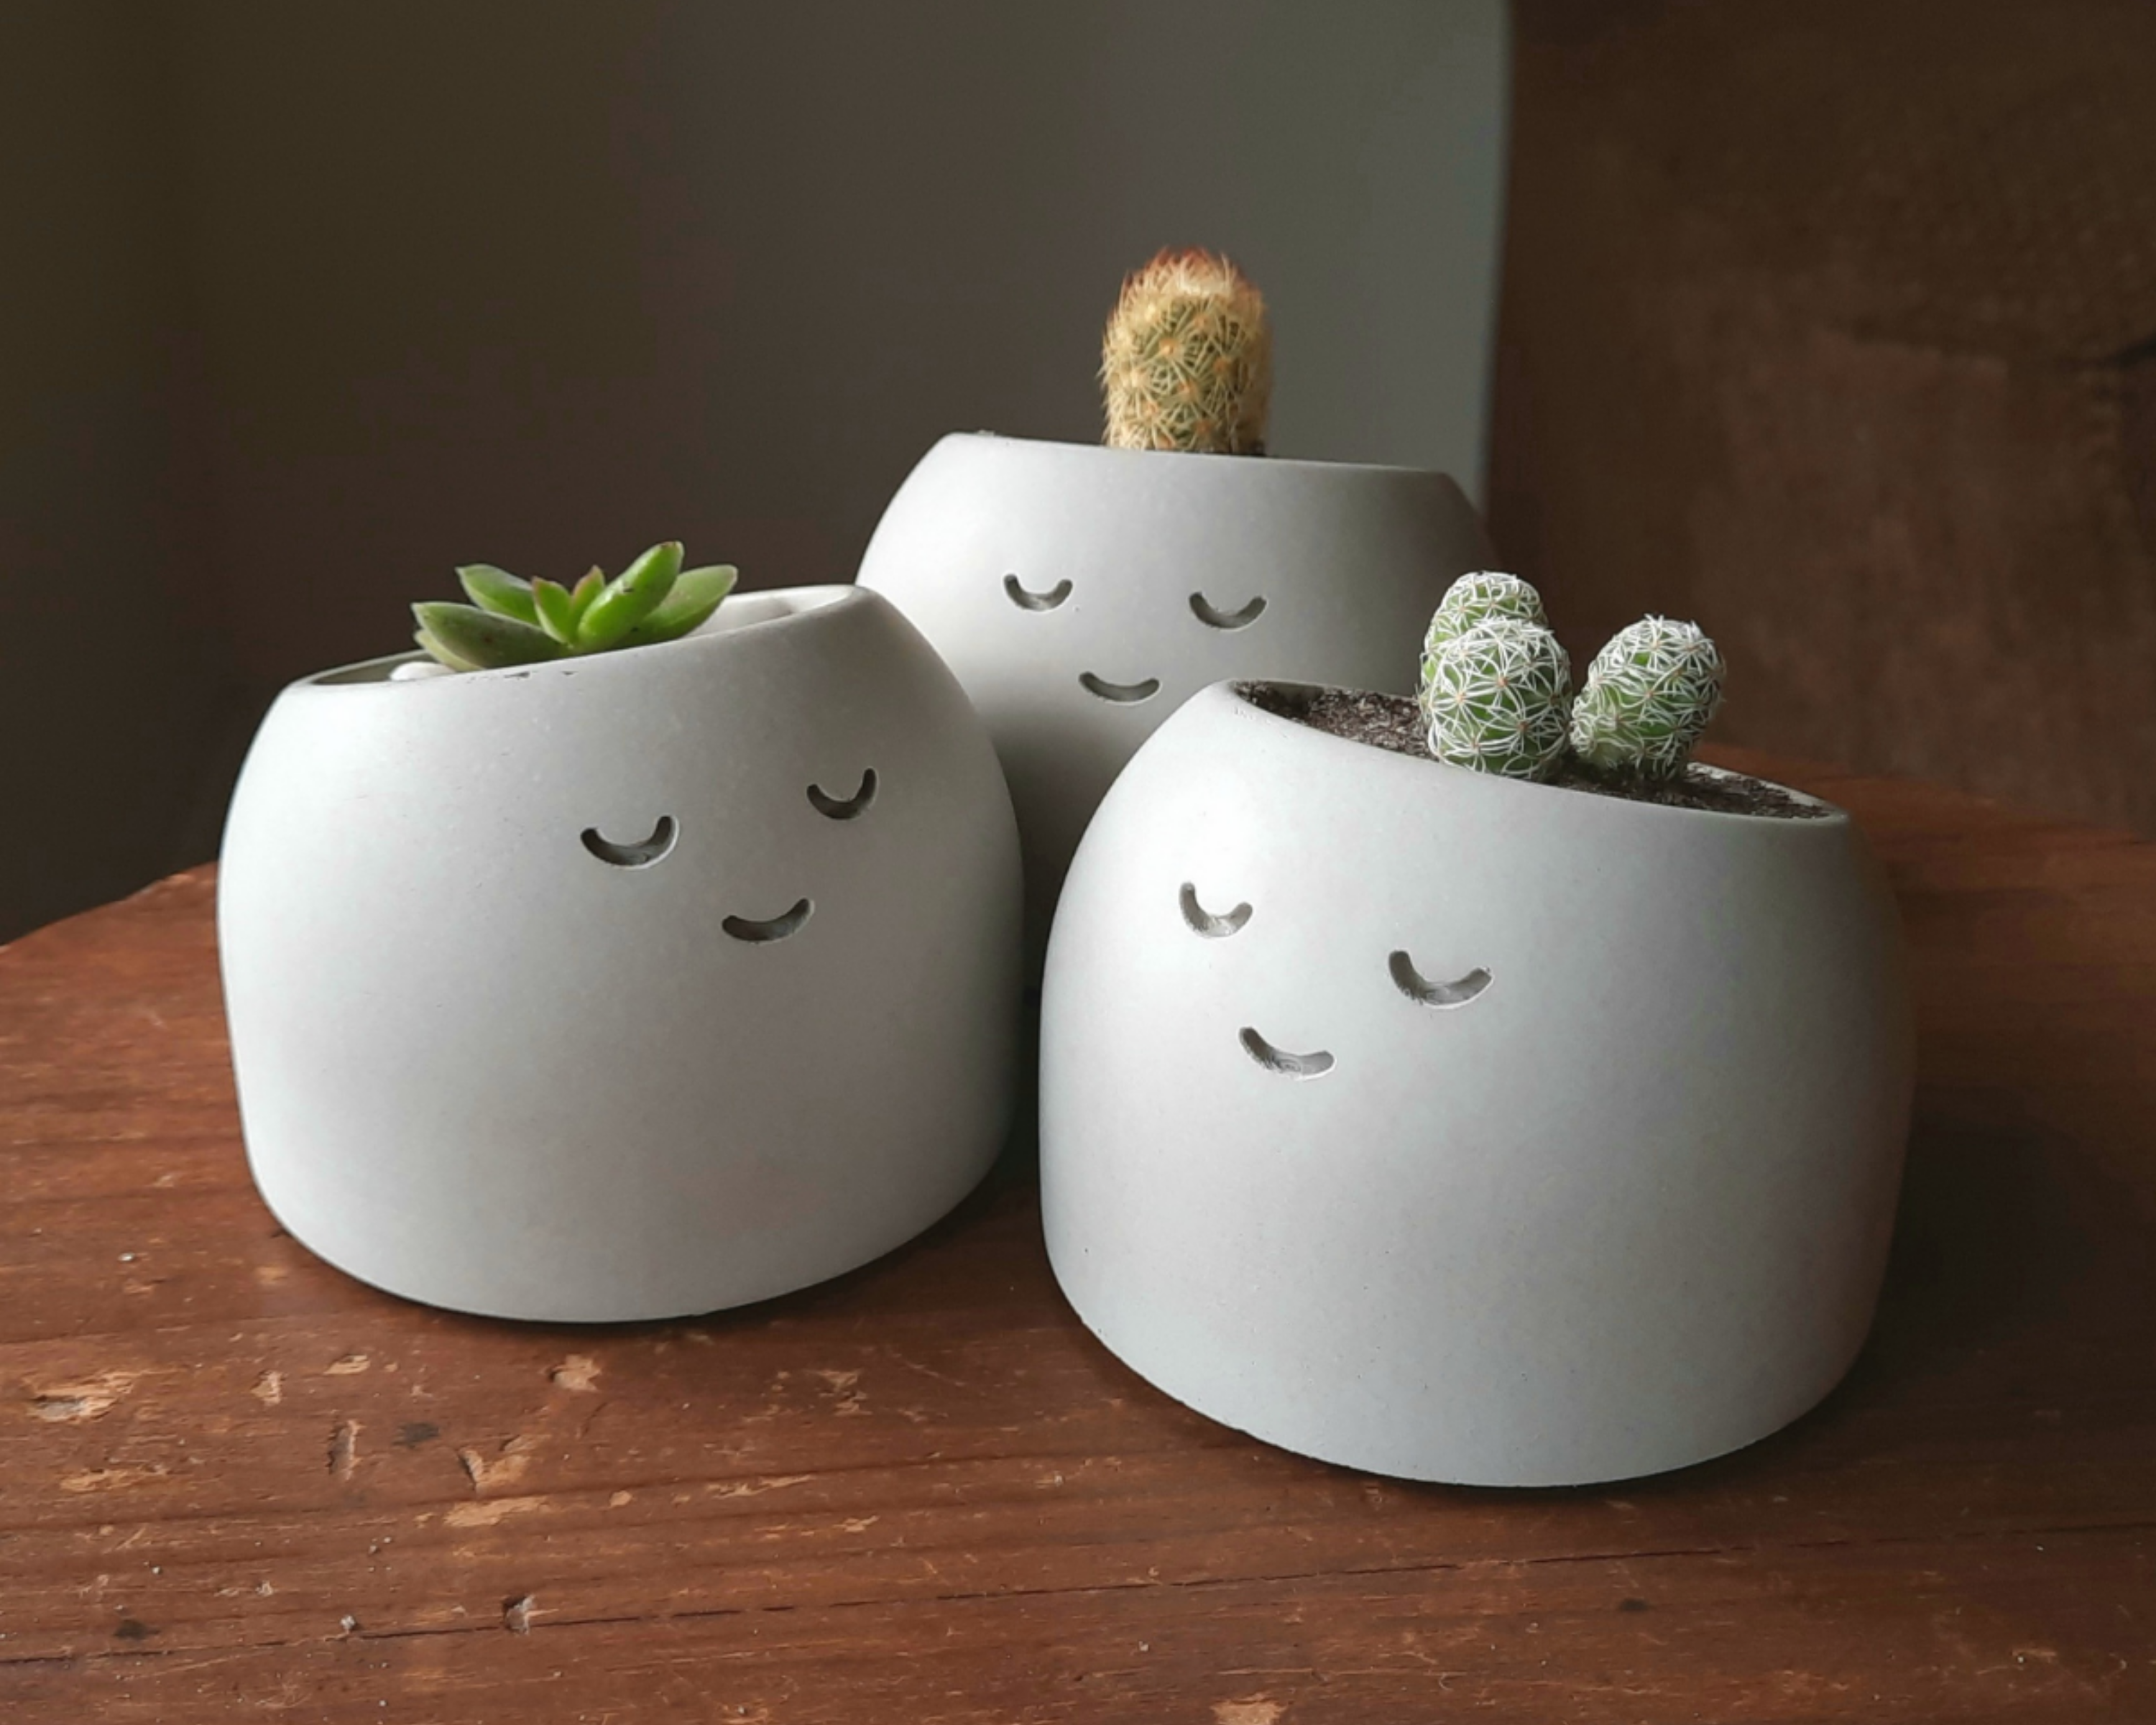 20% OFF for a limited time! Show off your plant's natural charm! This little planter's dream is to make you smile!Give your tiny plants, cuttings, and propagations some personality by planting them in this cute, sleepy little plant holder.These planters come with a drainage hole at the bottom to ensure that your plant's roots stay in tip-top shape! Hand crafted from raw materials Each and every one of these funny fellows is made from high-strength cement. They're all mixed, poured, sanded, and f